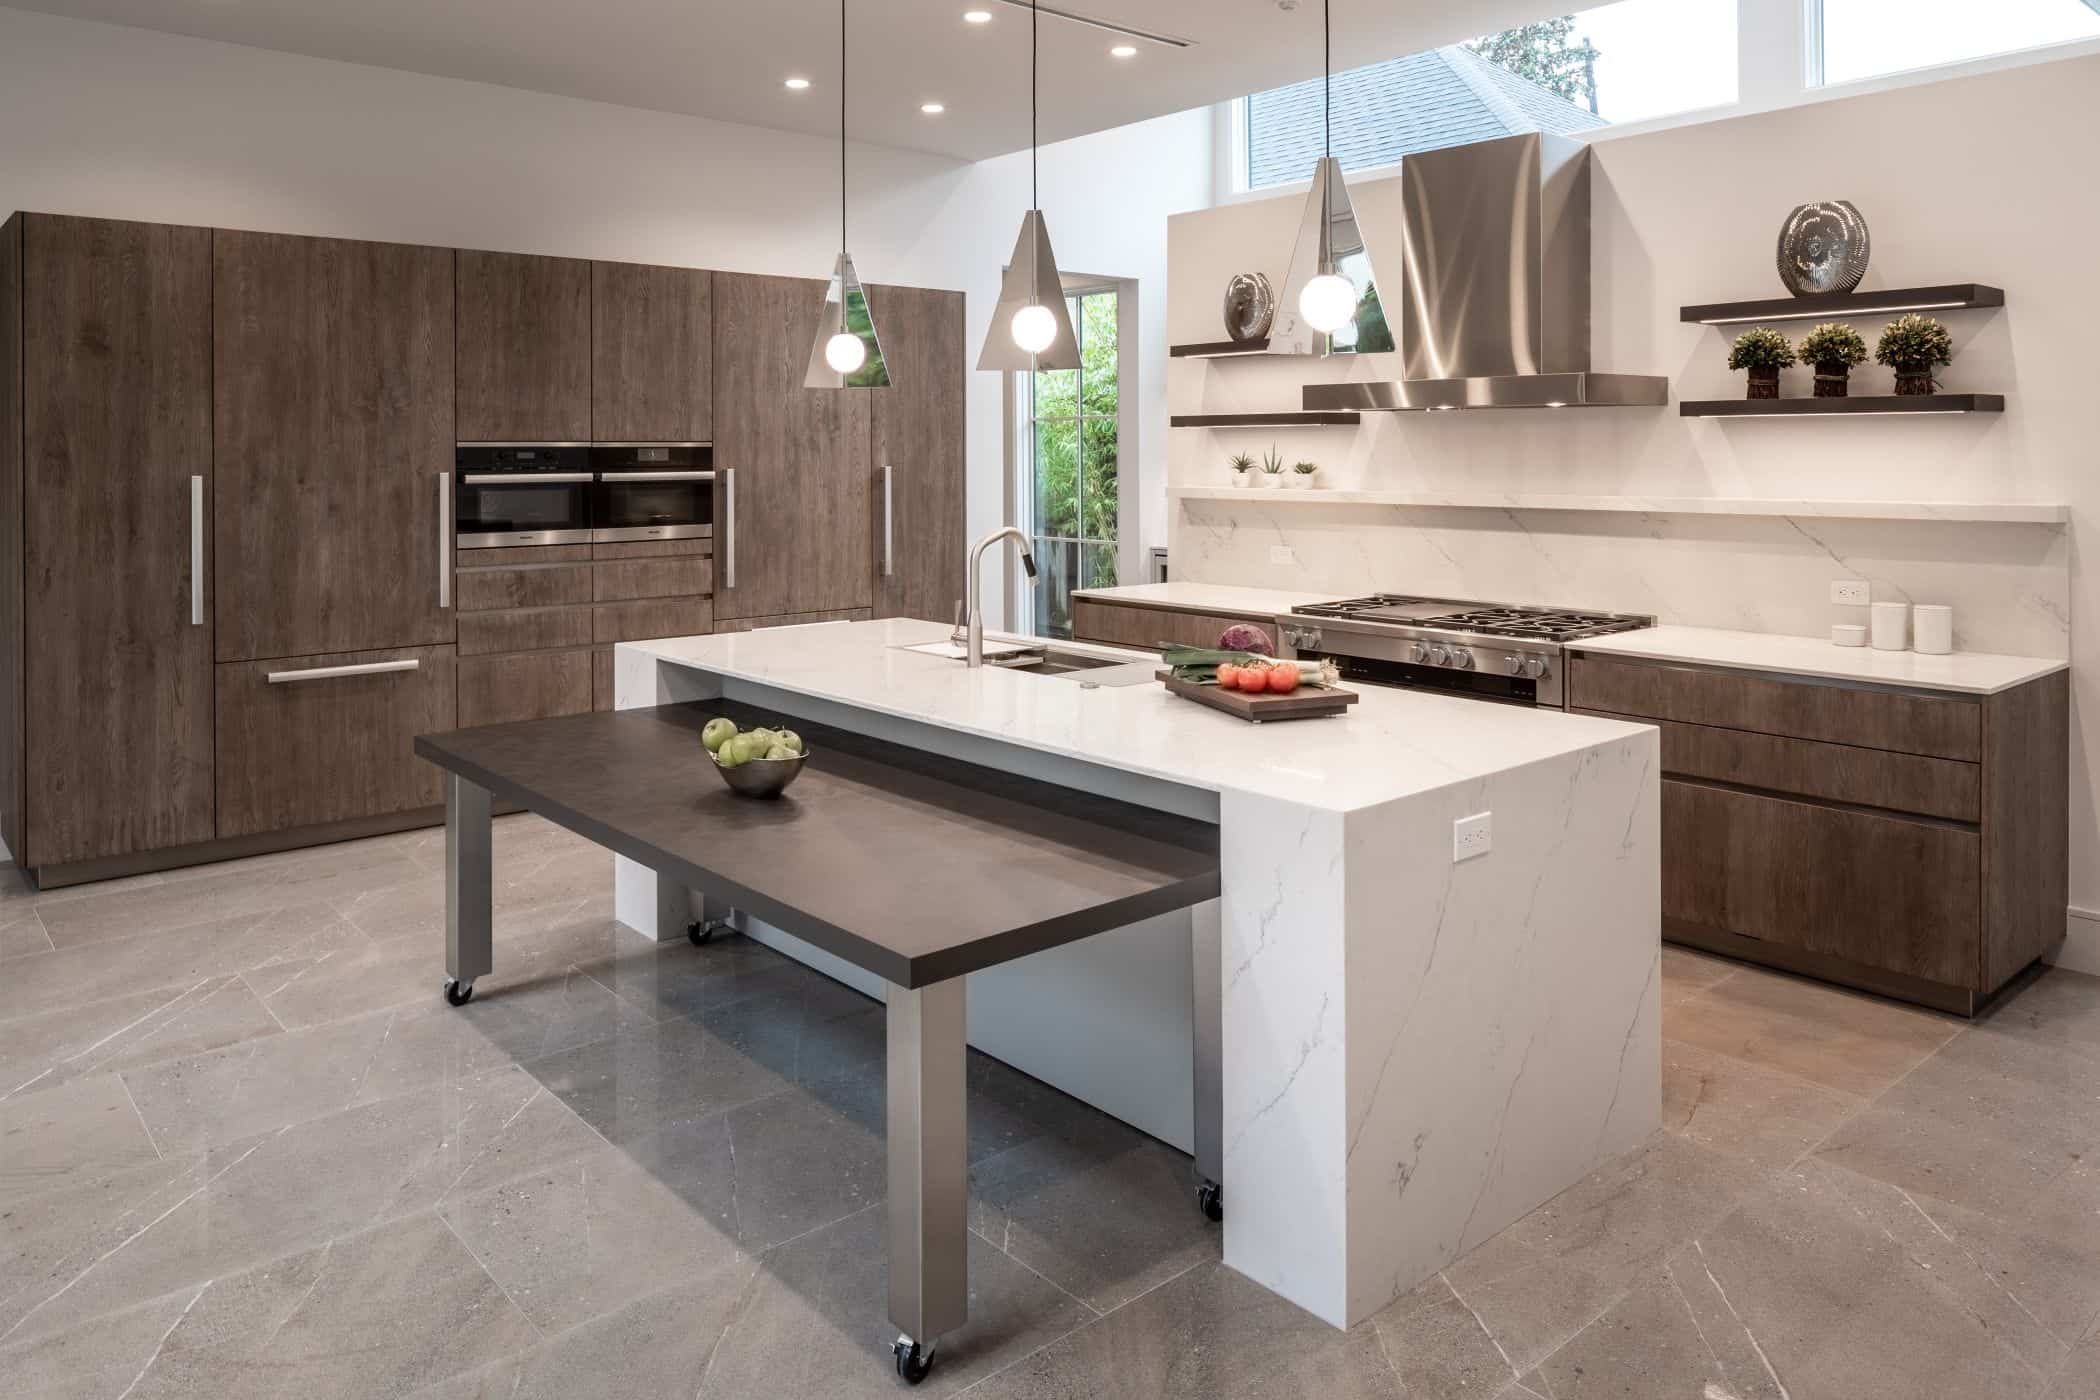 flexible nested dining table that stores under the island counter of an eggersmann kitchen in a washington coalition memorial park area home in houston